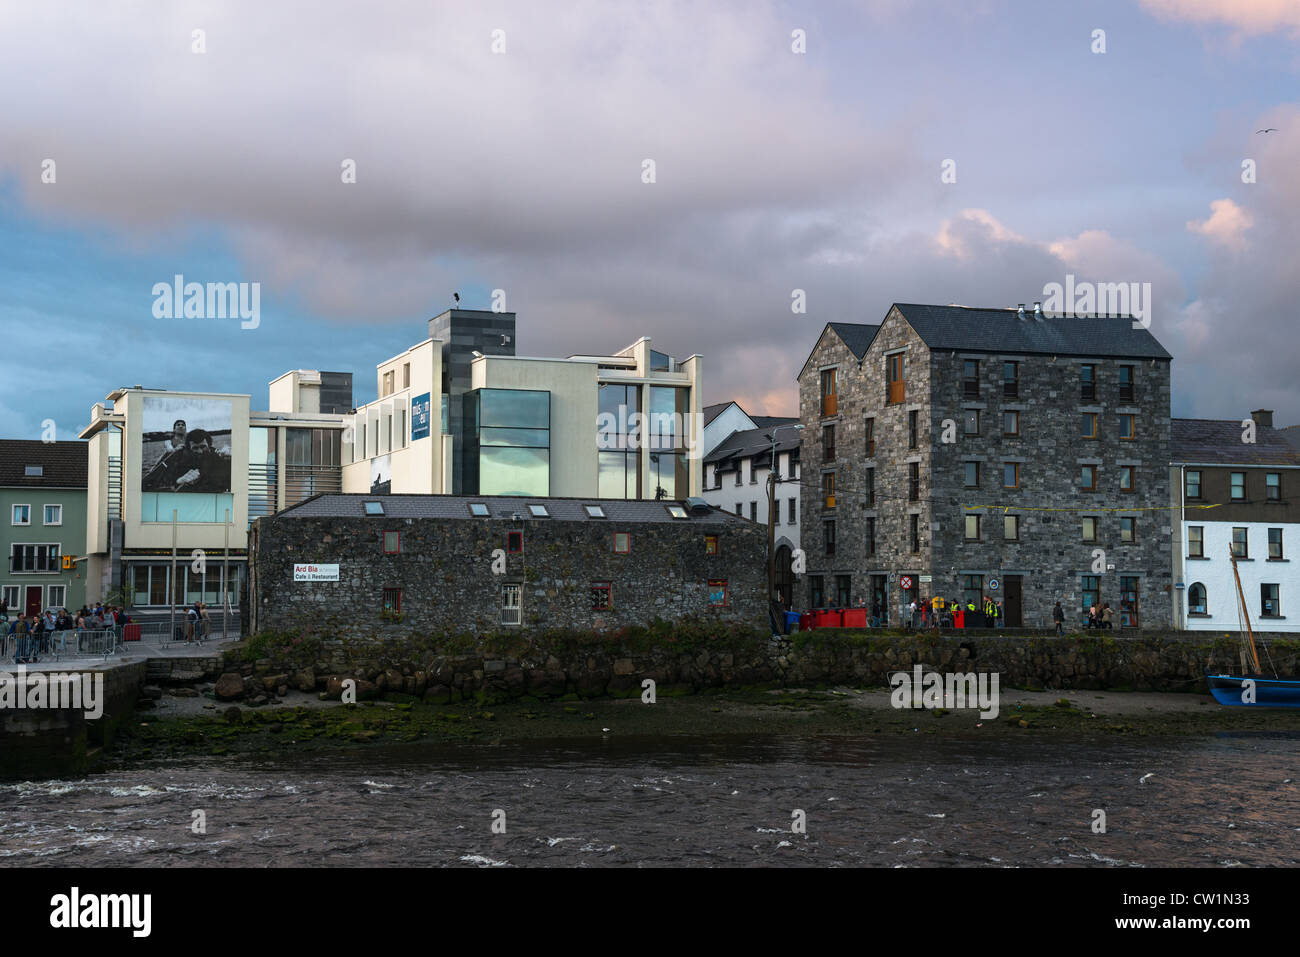 Galway City Museum near the Spanish Arch and Long walk, County Galway, Ireland. - Stock Image